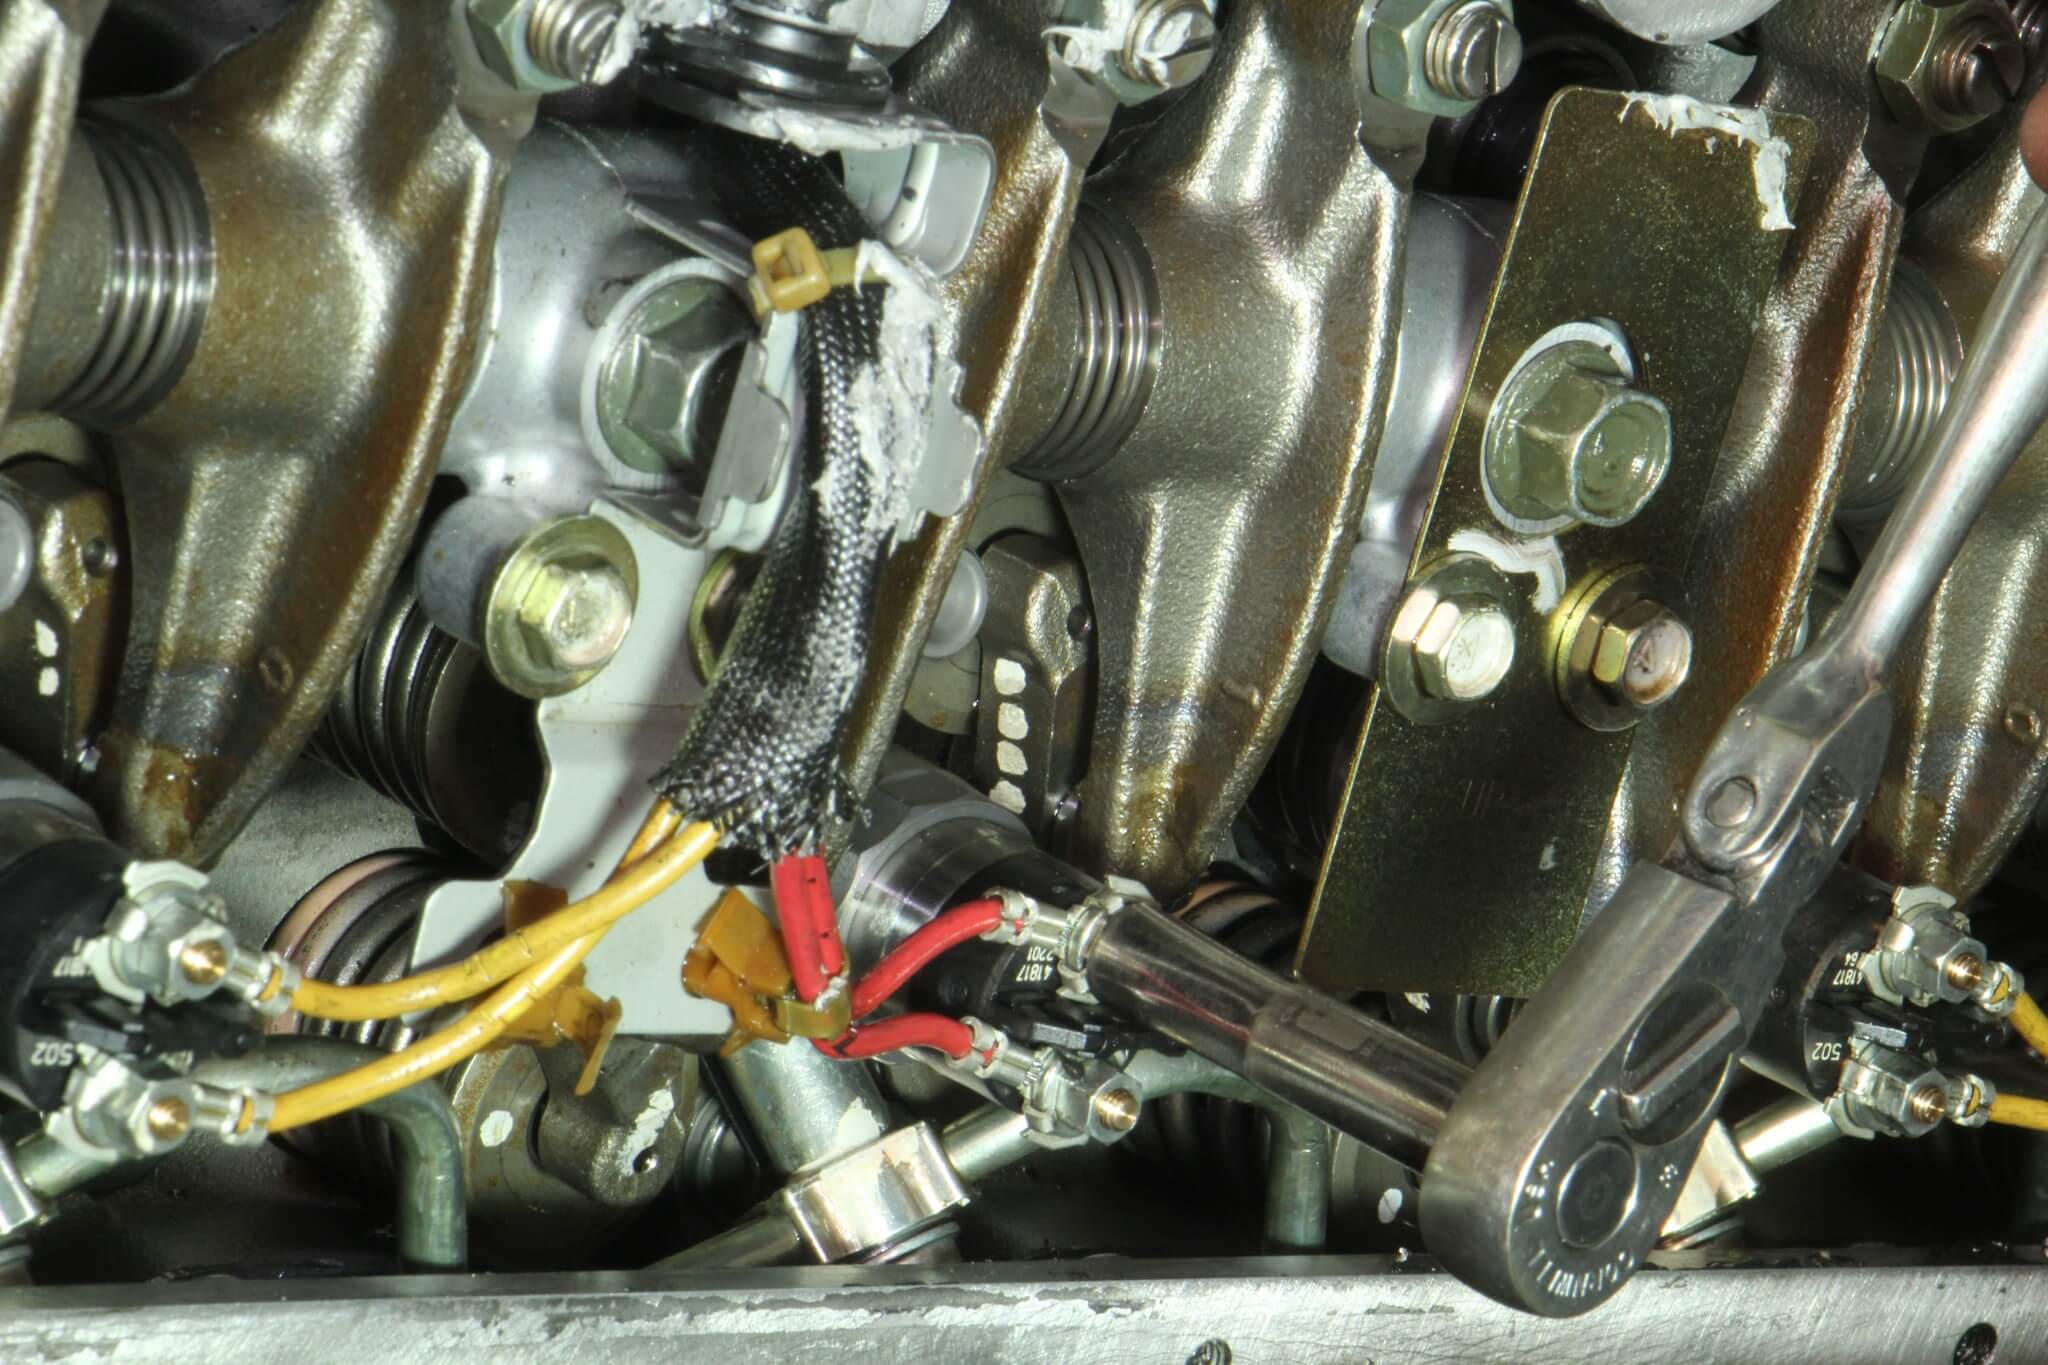 7. The injector solenoid wires were removed using a 7mm socket.